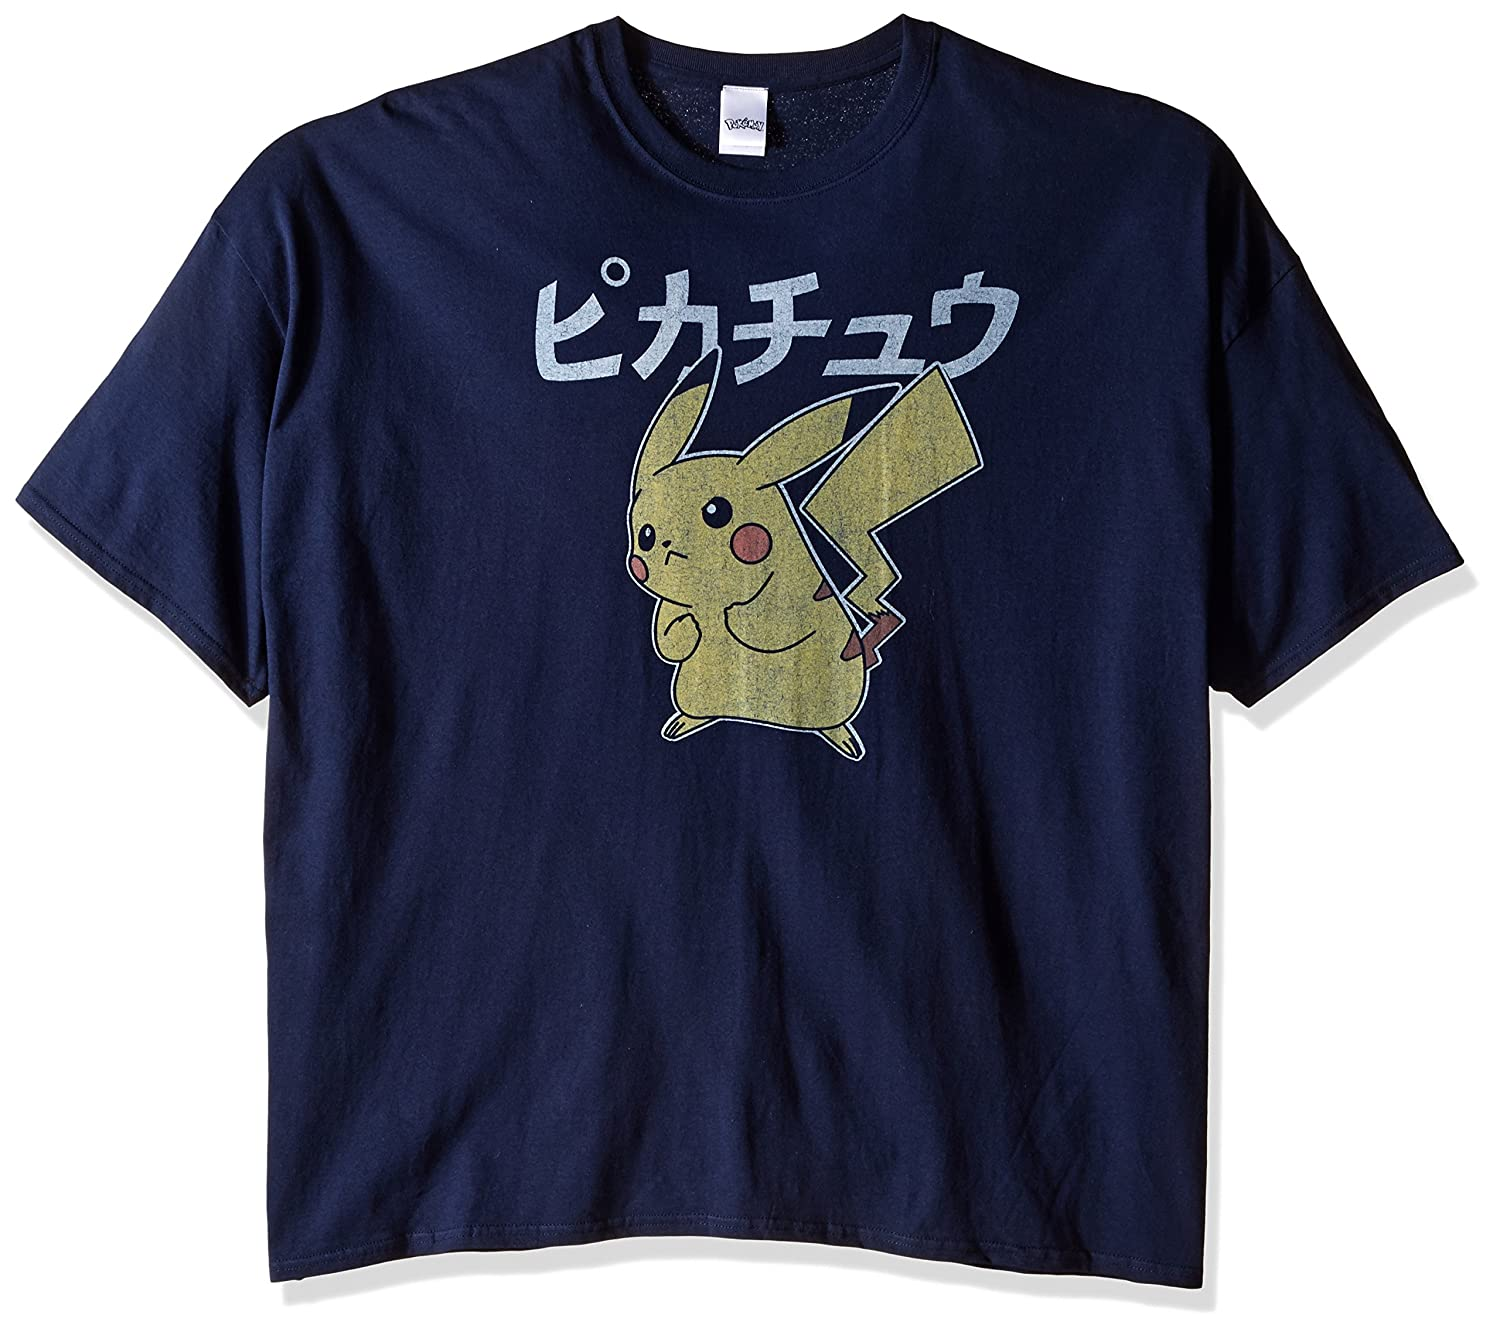 3870f0399 Amazon.com: Pokemon Men's Vintage Pikachu T-Shirt, Navy, 5X-Large: Clothing